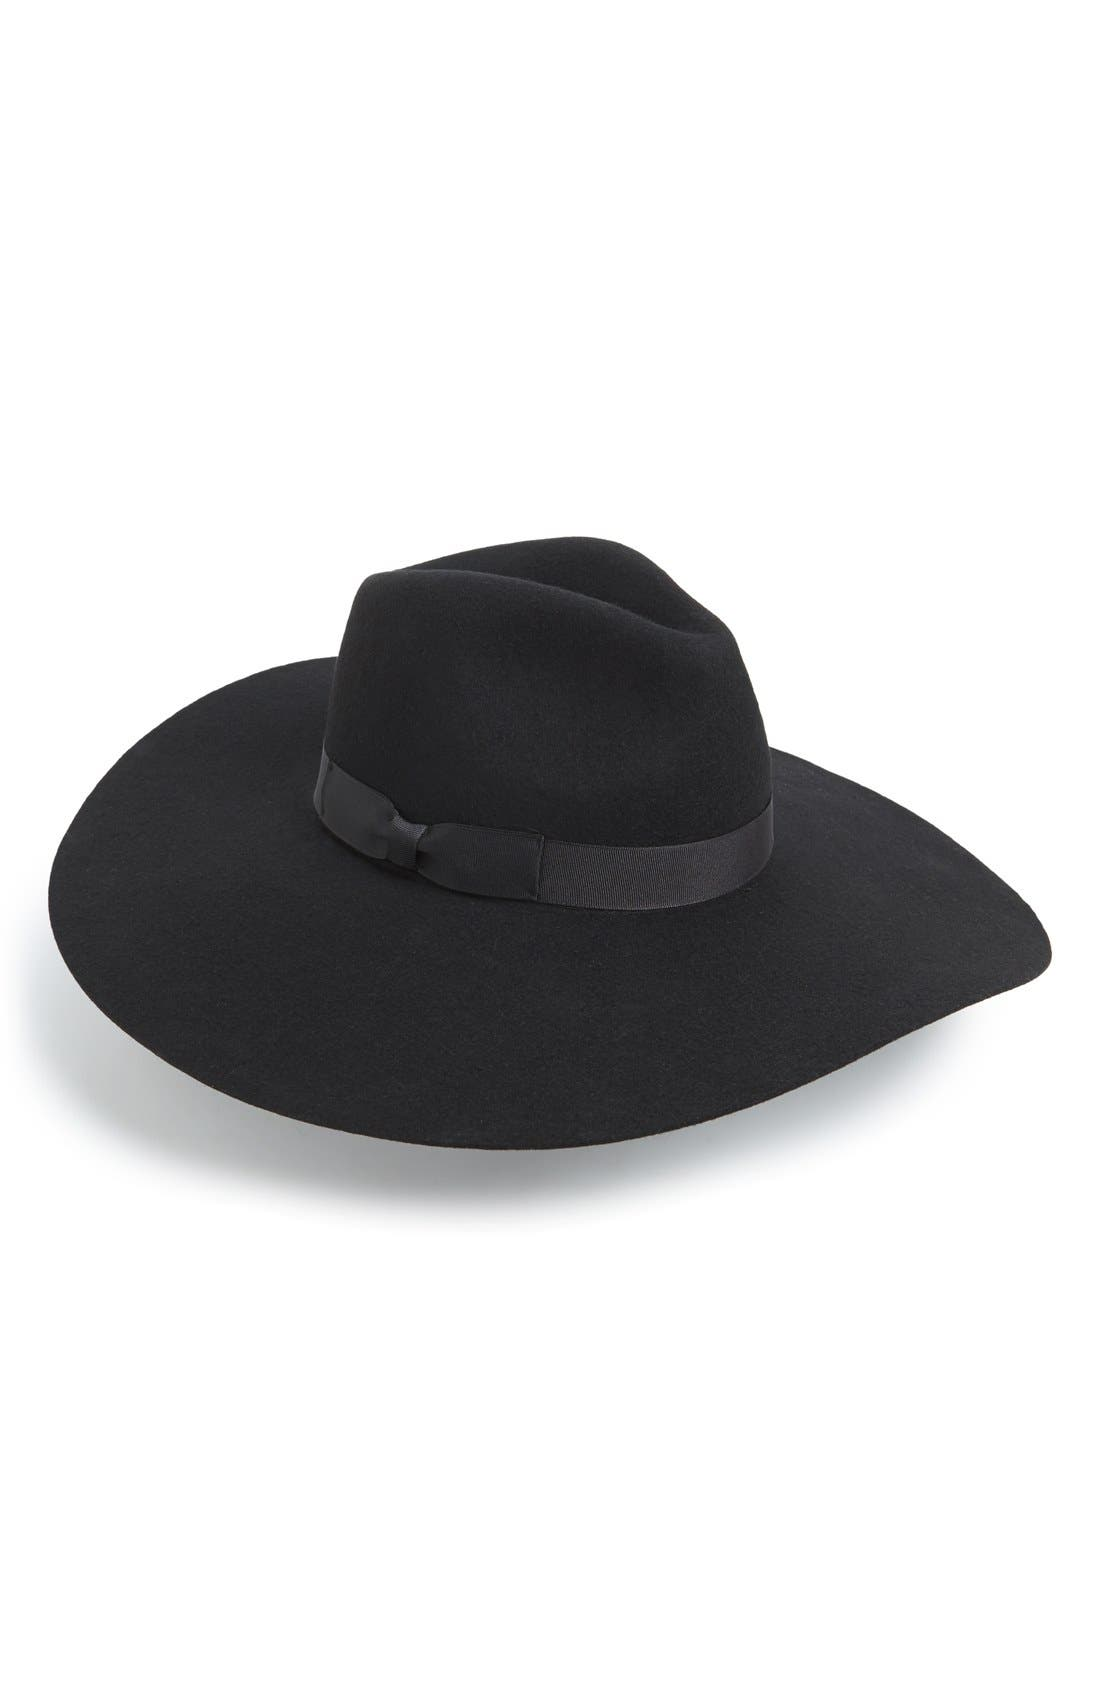 Alternate Image 1 Selected - Lack of Color 'Montana Midnight Muse II' Floppy Wool Hat